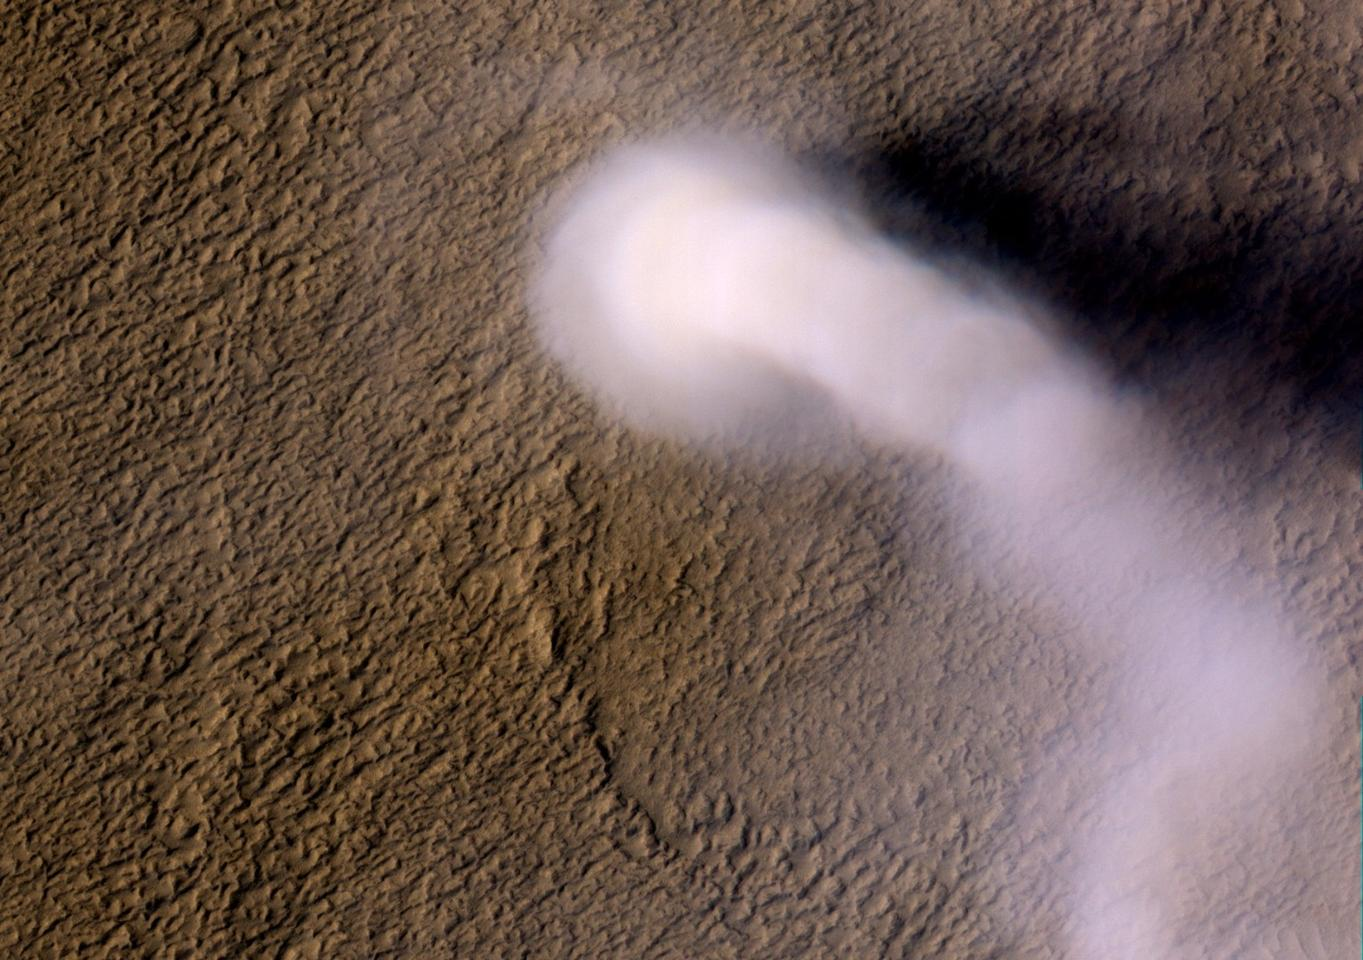 This dust devil captured in 2012 by NASA's Mars Reconnaissance Orbiter towered roughly 12 miles (20 km) above the Martian surface